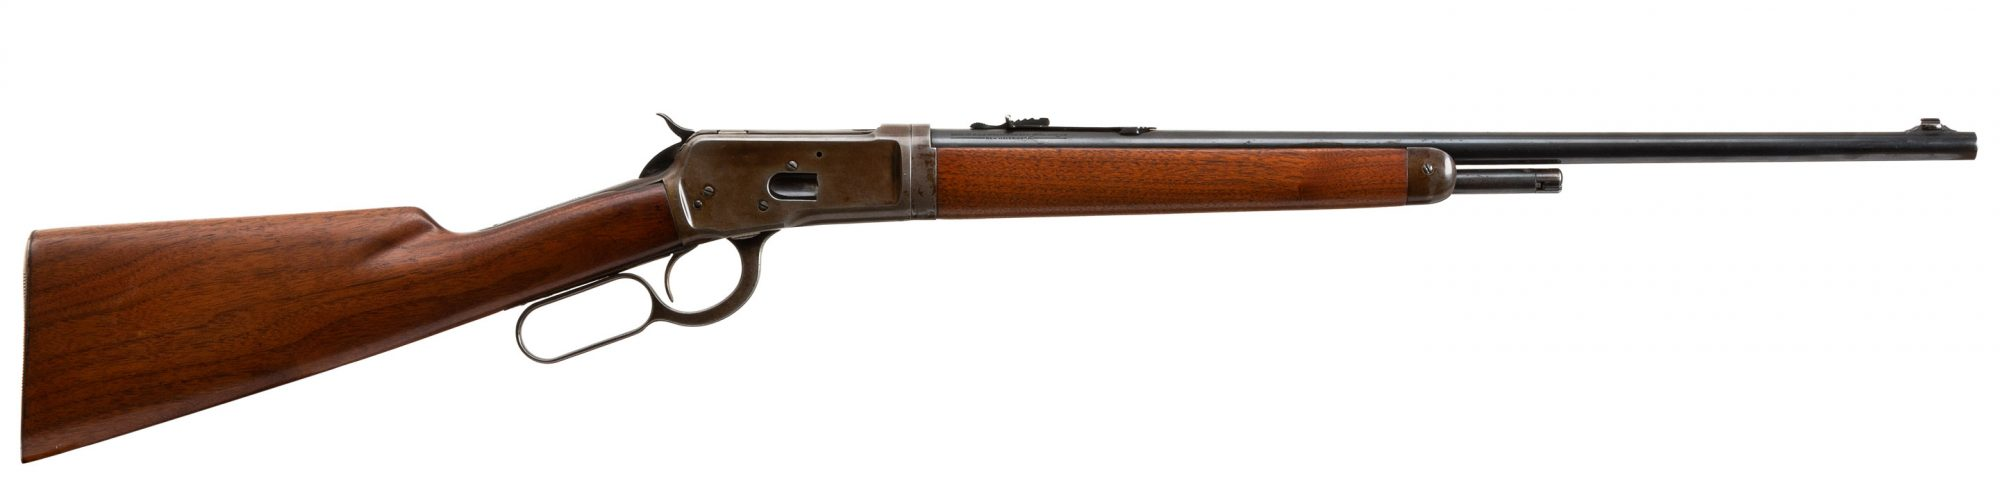 Photo of a pre-owned Winchester Model 53 Takedown, for sale by Turnbull Restoration of Bloomfield, NY